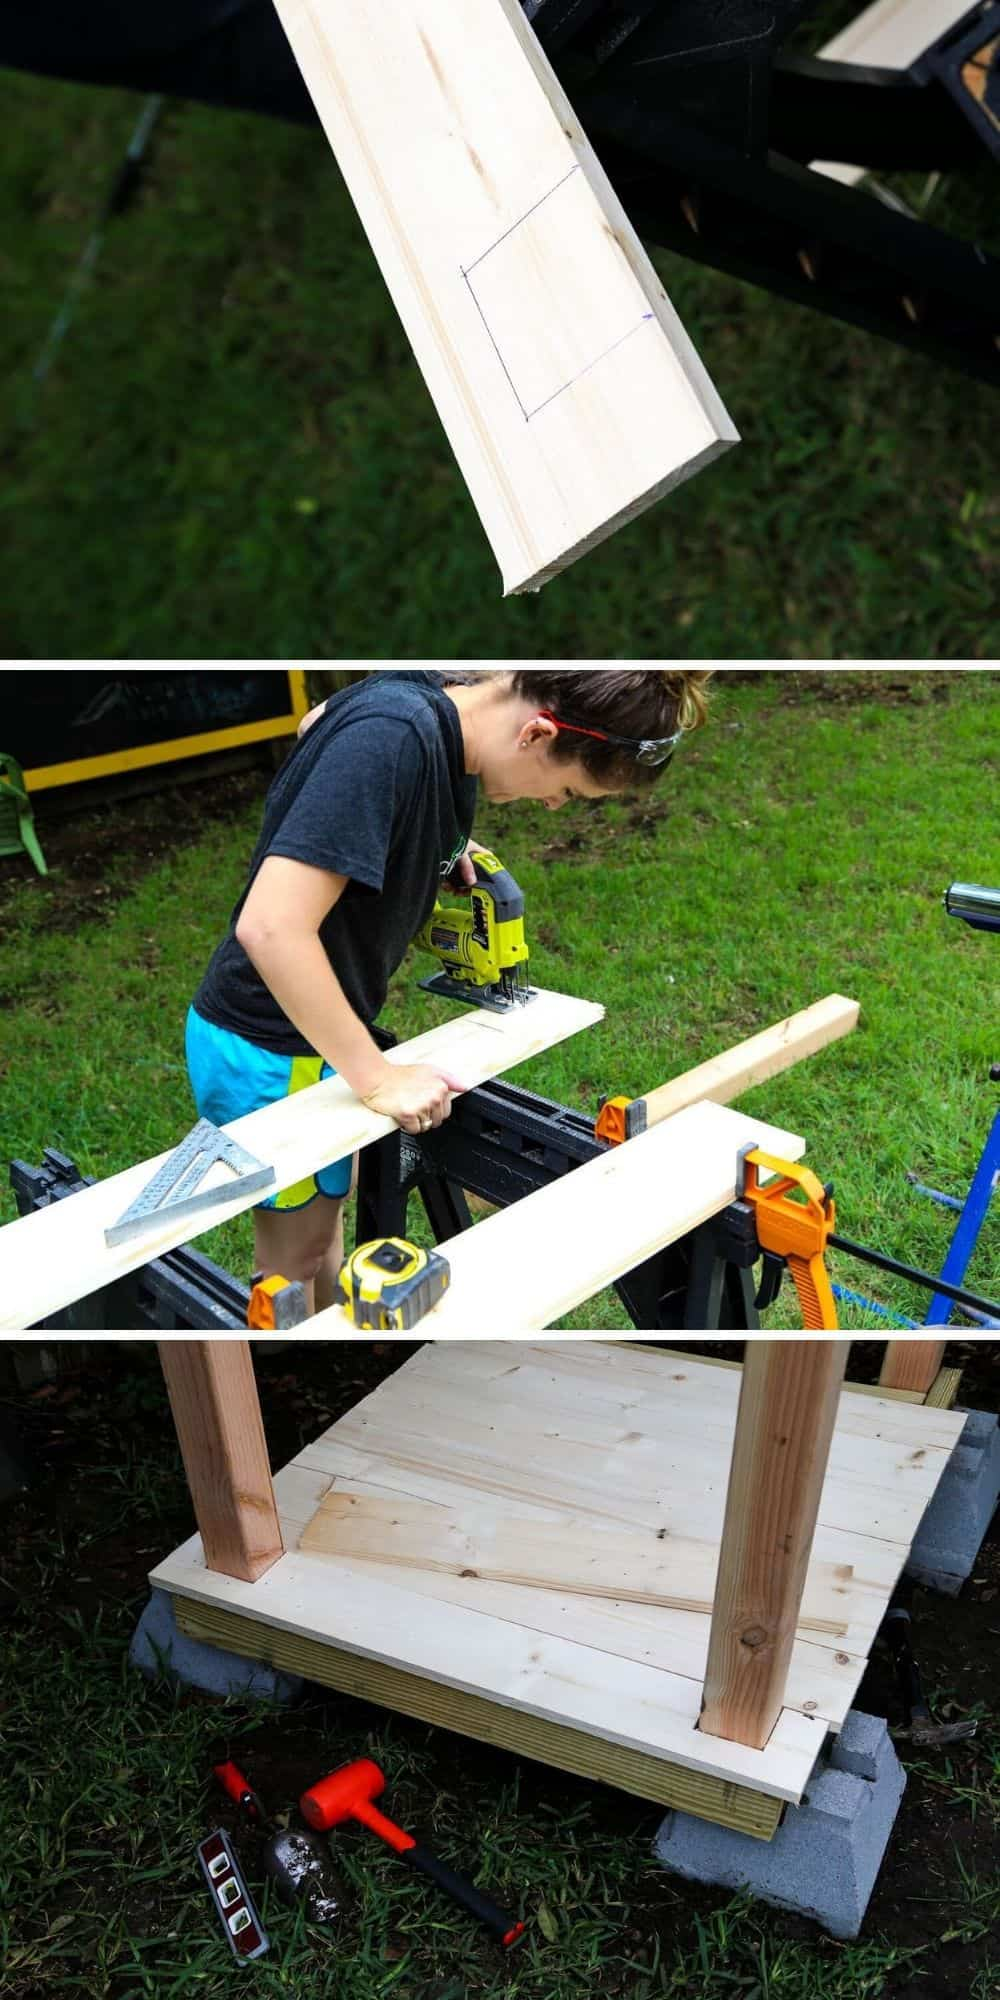 collage of close up images of a woman installing flooring in a DIY outdoor playhouse